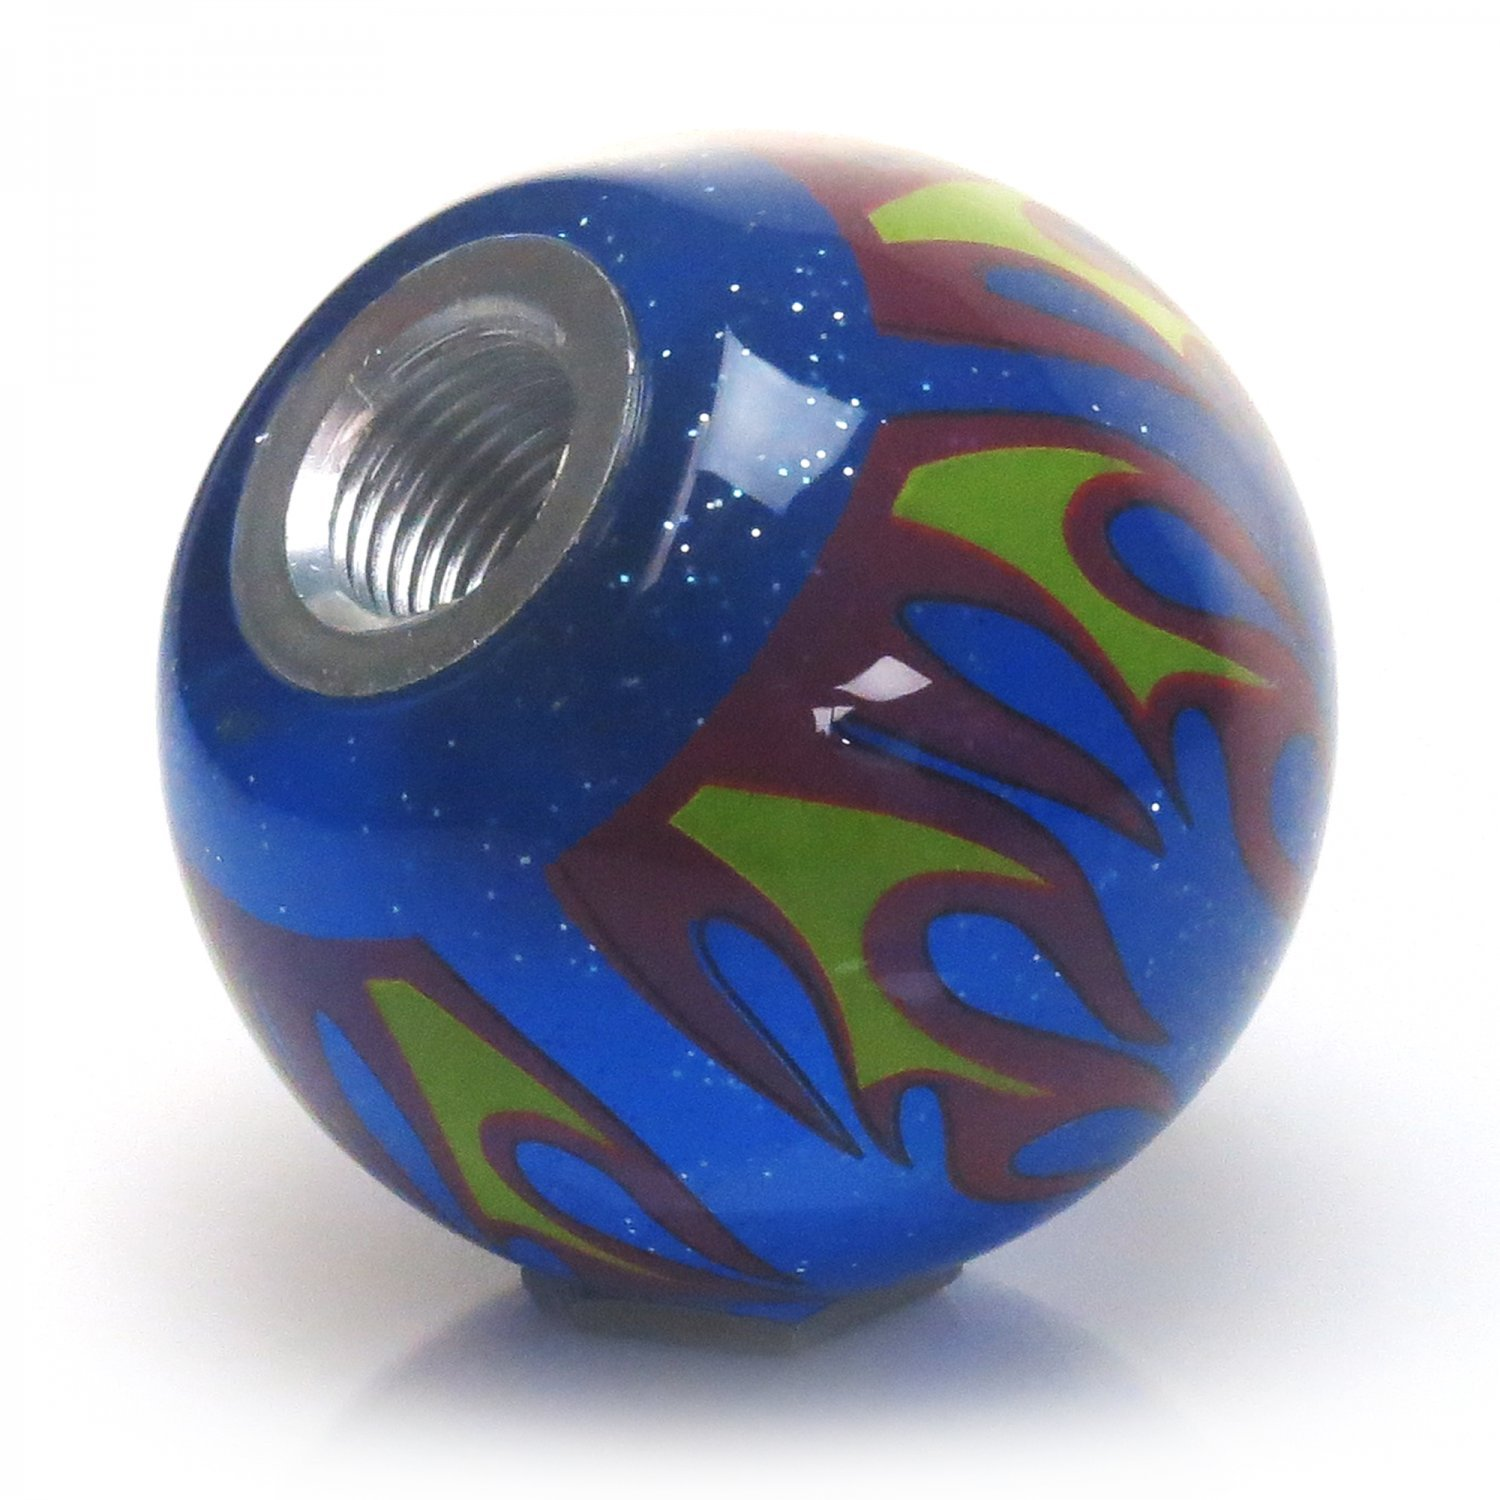 American Shifter 251590 Blue Flame Metal Flake Shift Knob with M16 x 1.5 Insert Blue Shift Pattern OS3n